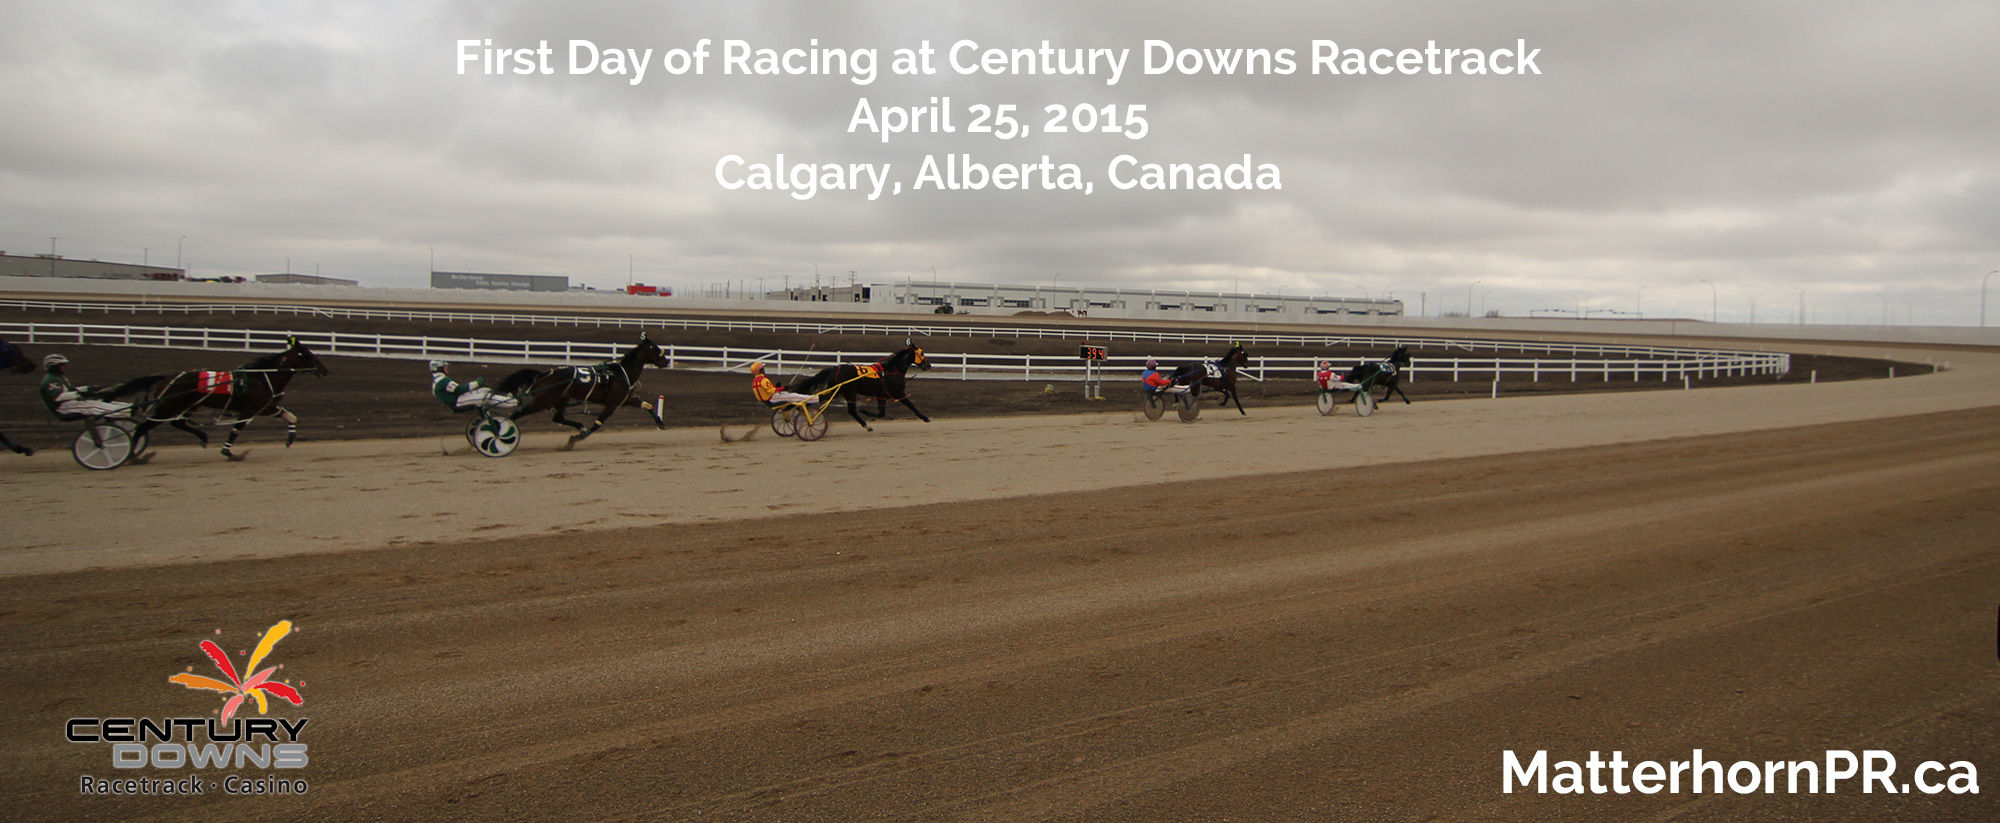 Harness Racing at Century Downs Calgary Public Relations